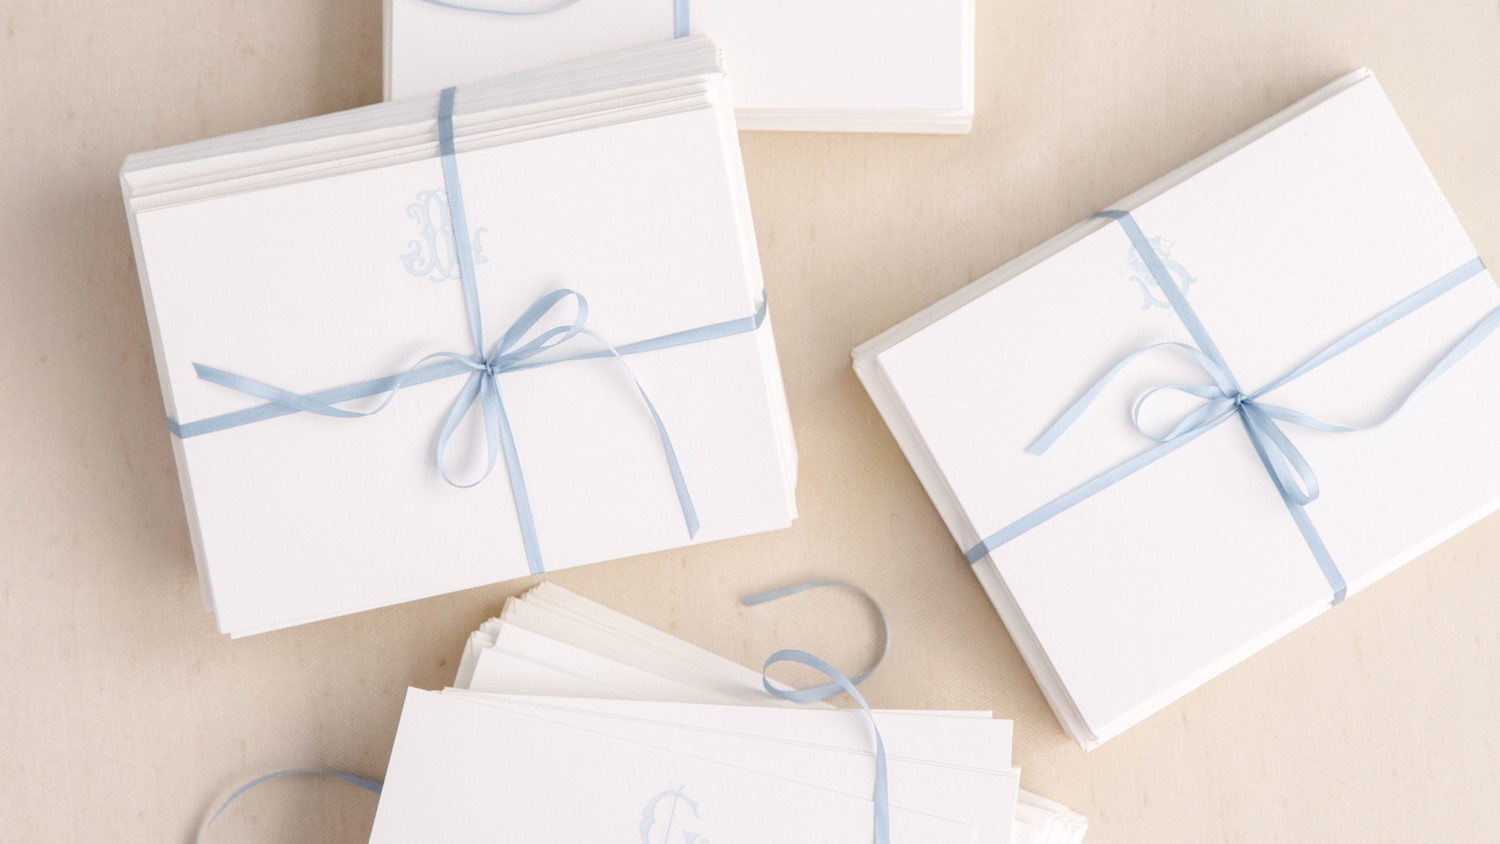 Opening Wedding Gifts: Do You Have To Open Gifts At Your Bridal Shower?